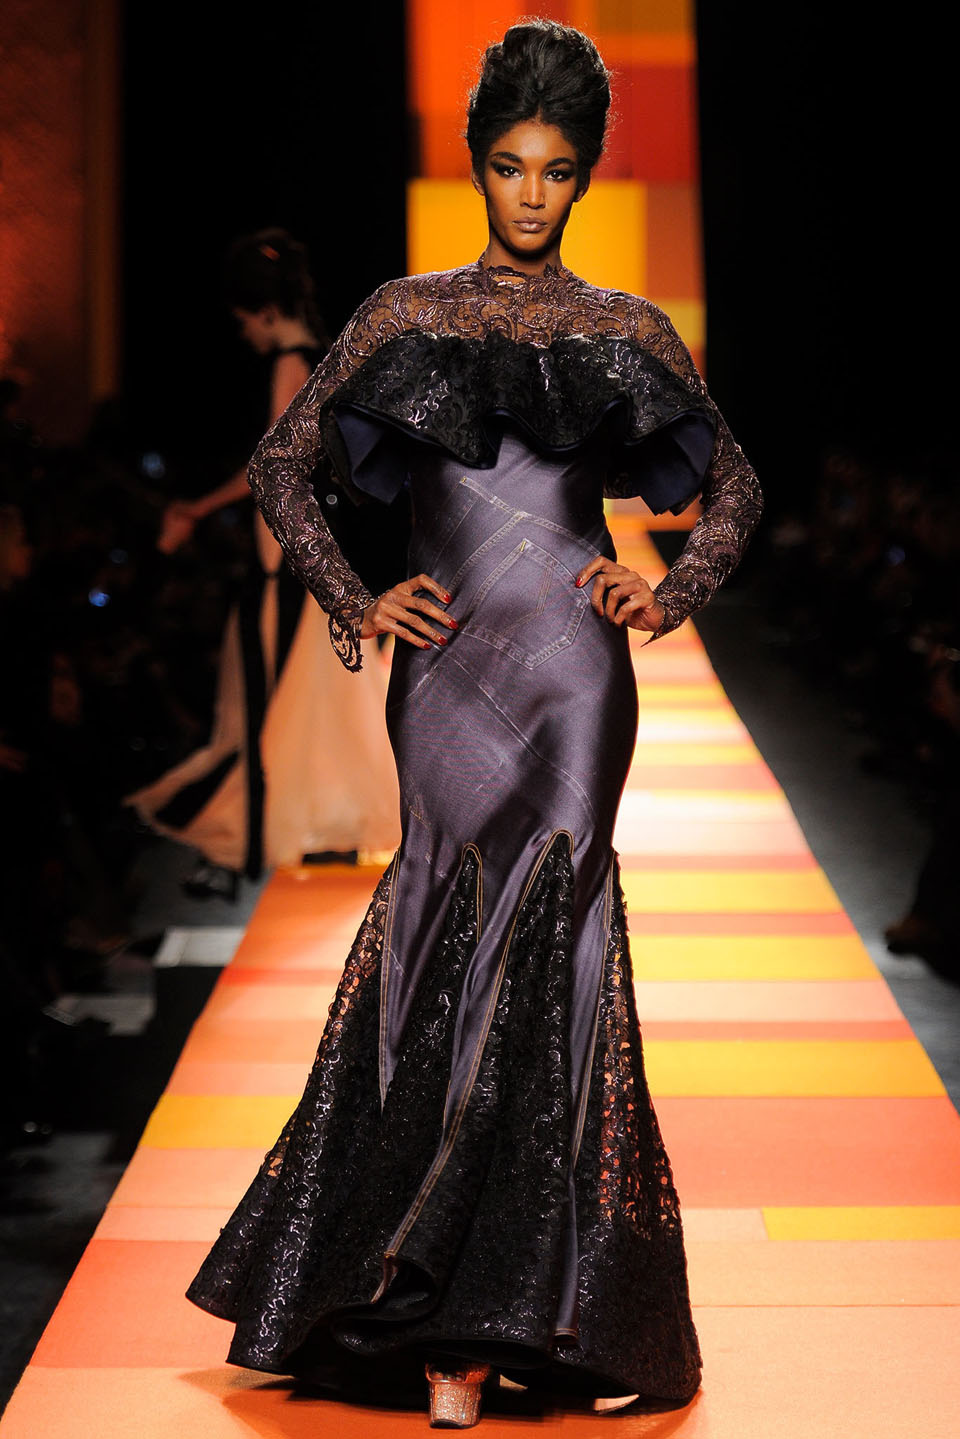 Jean Paul Gaultier Spring - Summer 2013, Haute Couture collection.19